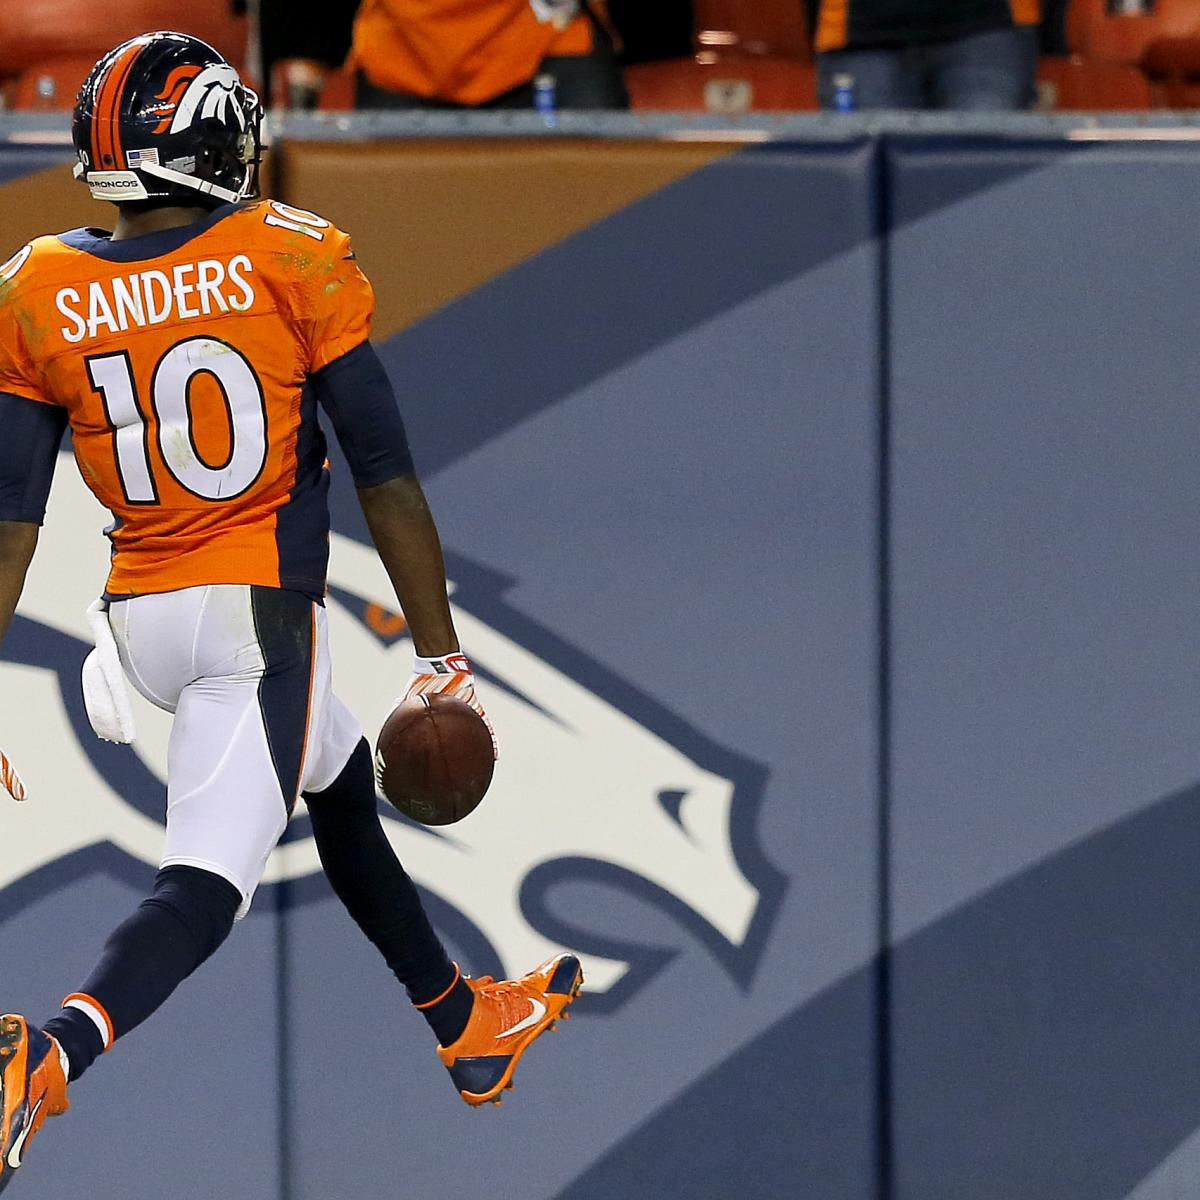 Denver News Market: Why Emmanuel Sanders Is The Denver Broncos' Biggest X